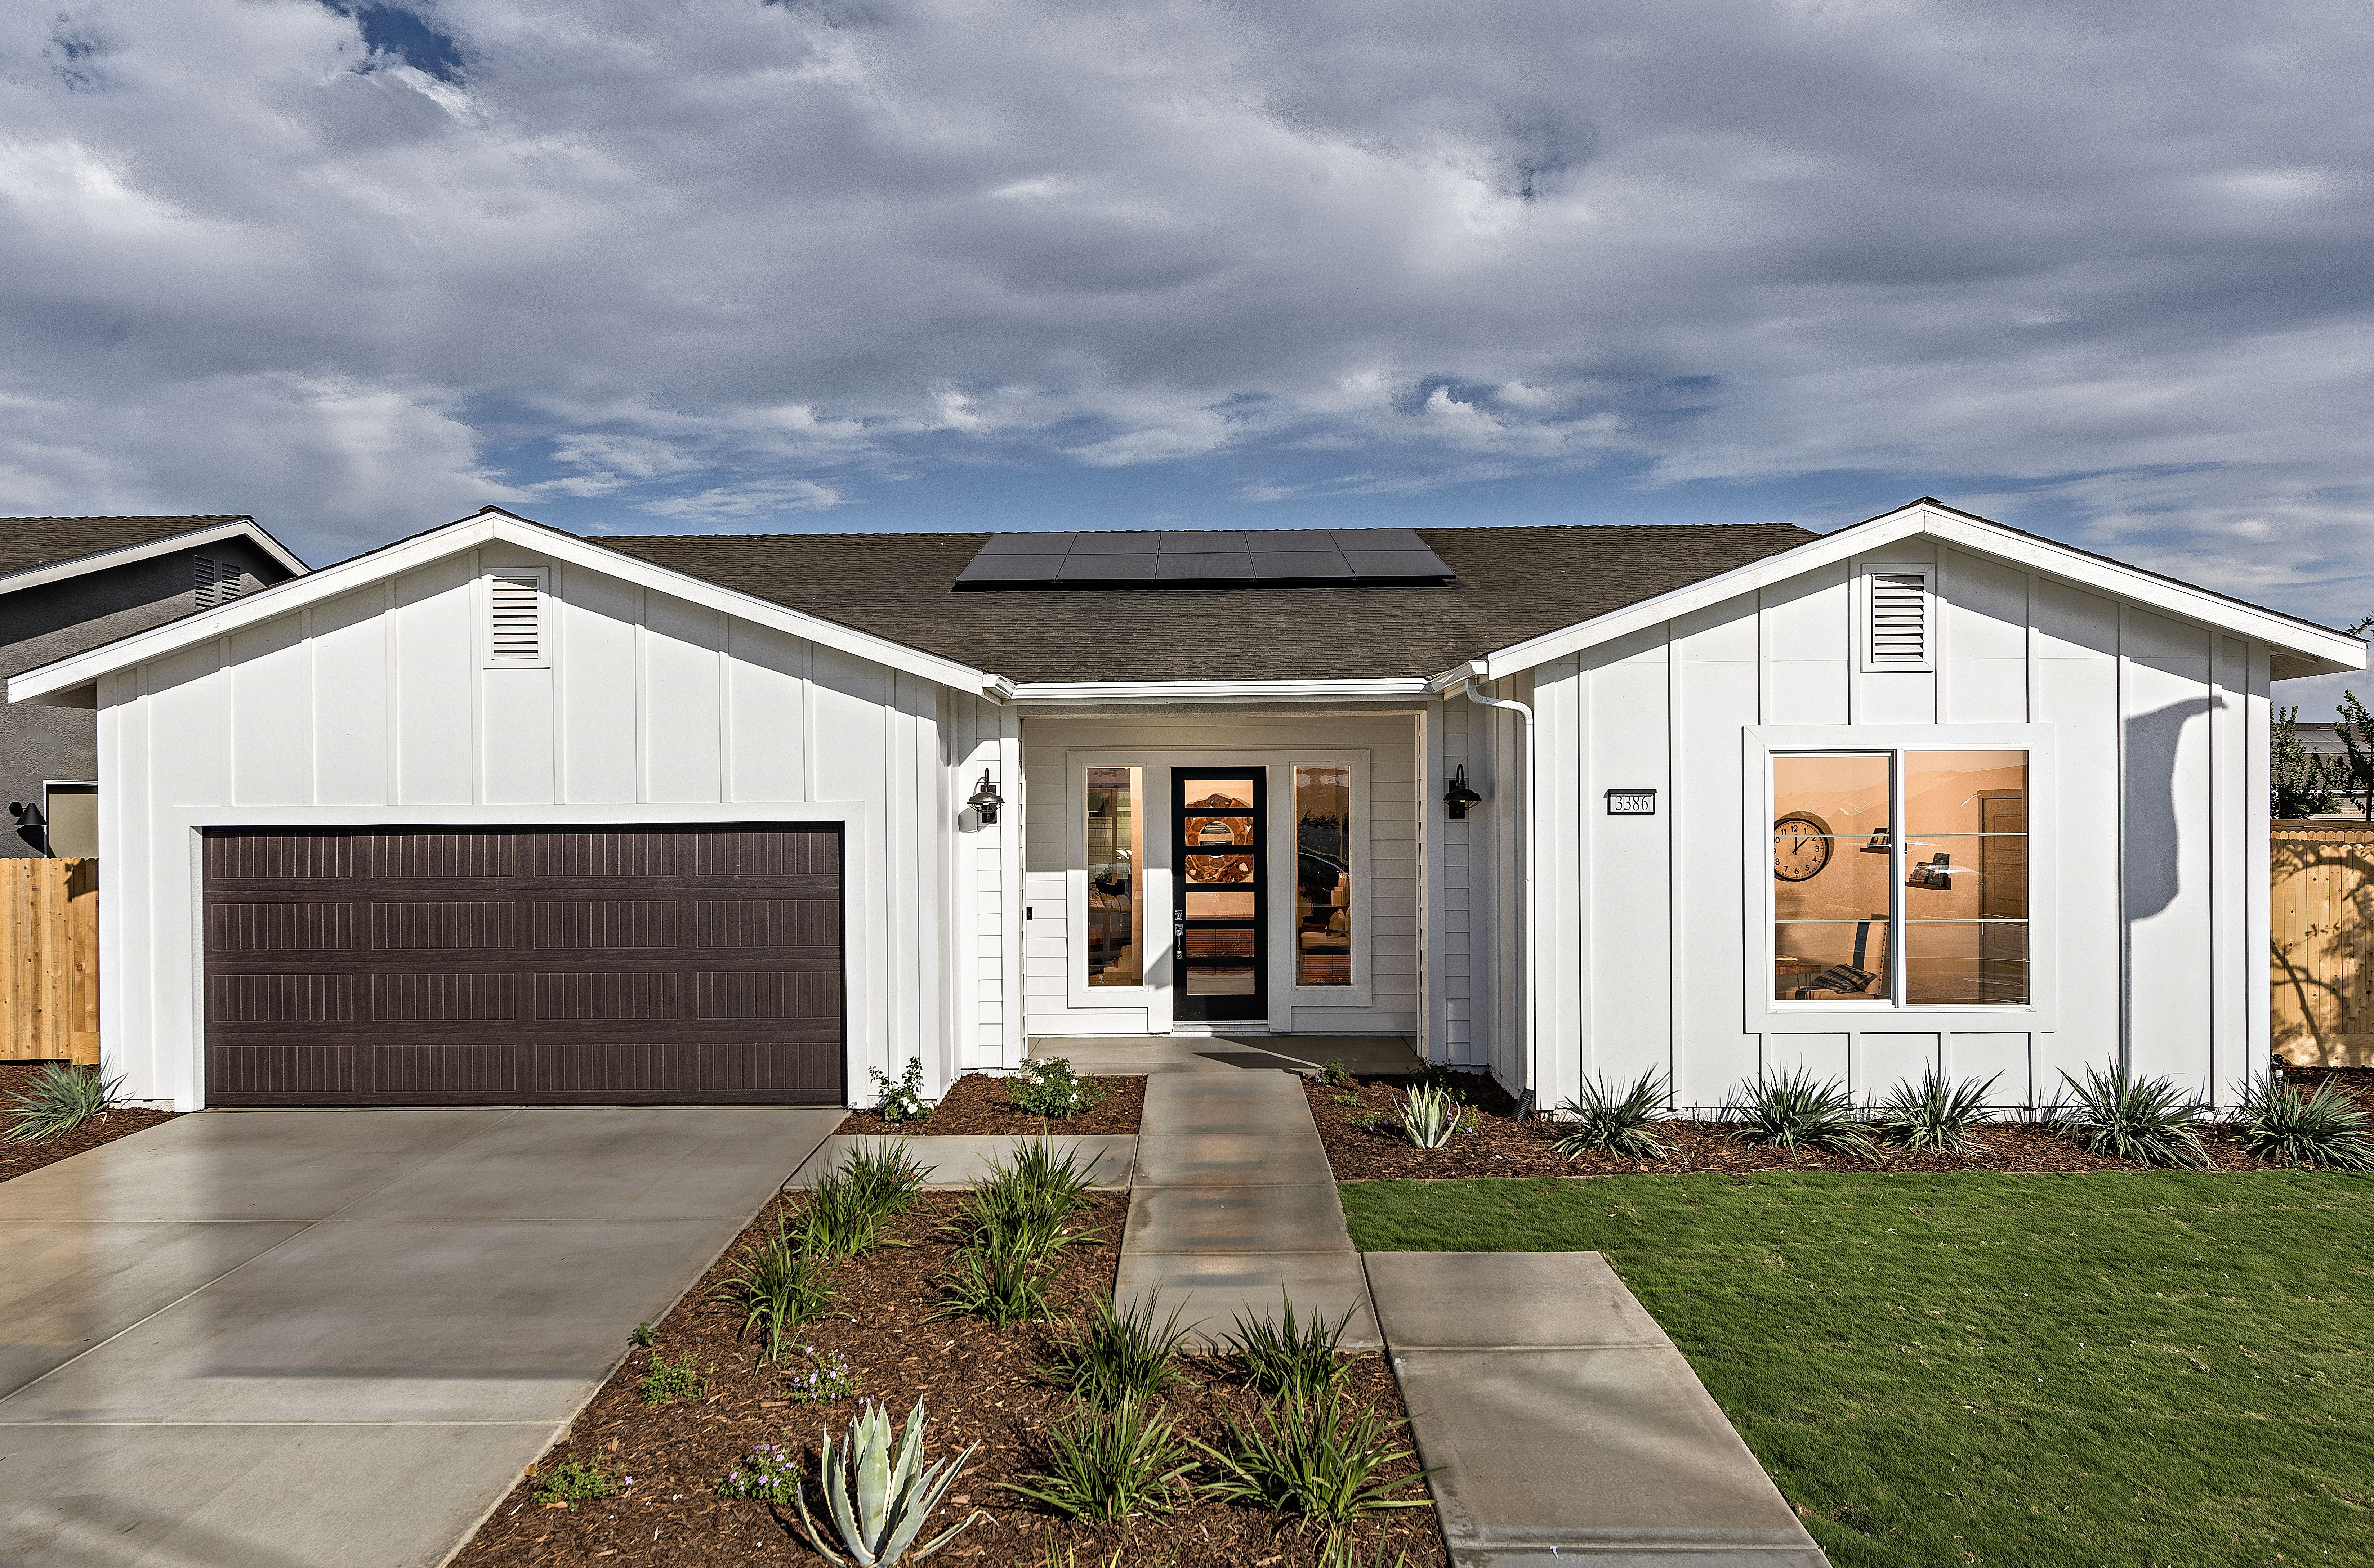 Modern All White Farmhouse Exterior Single Story Home Modern Farmhouse Exterior White Exterior Houses California Homes